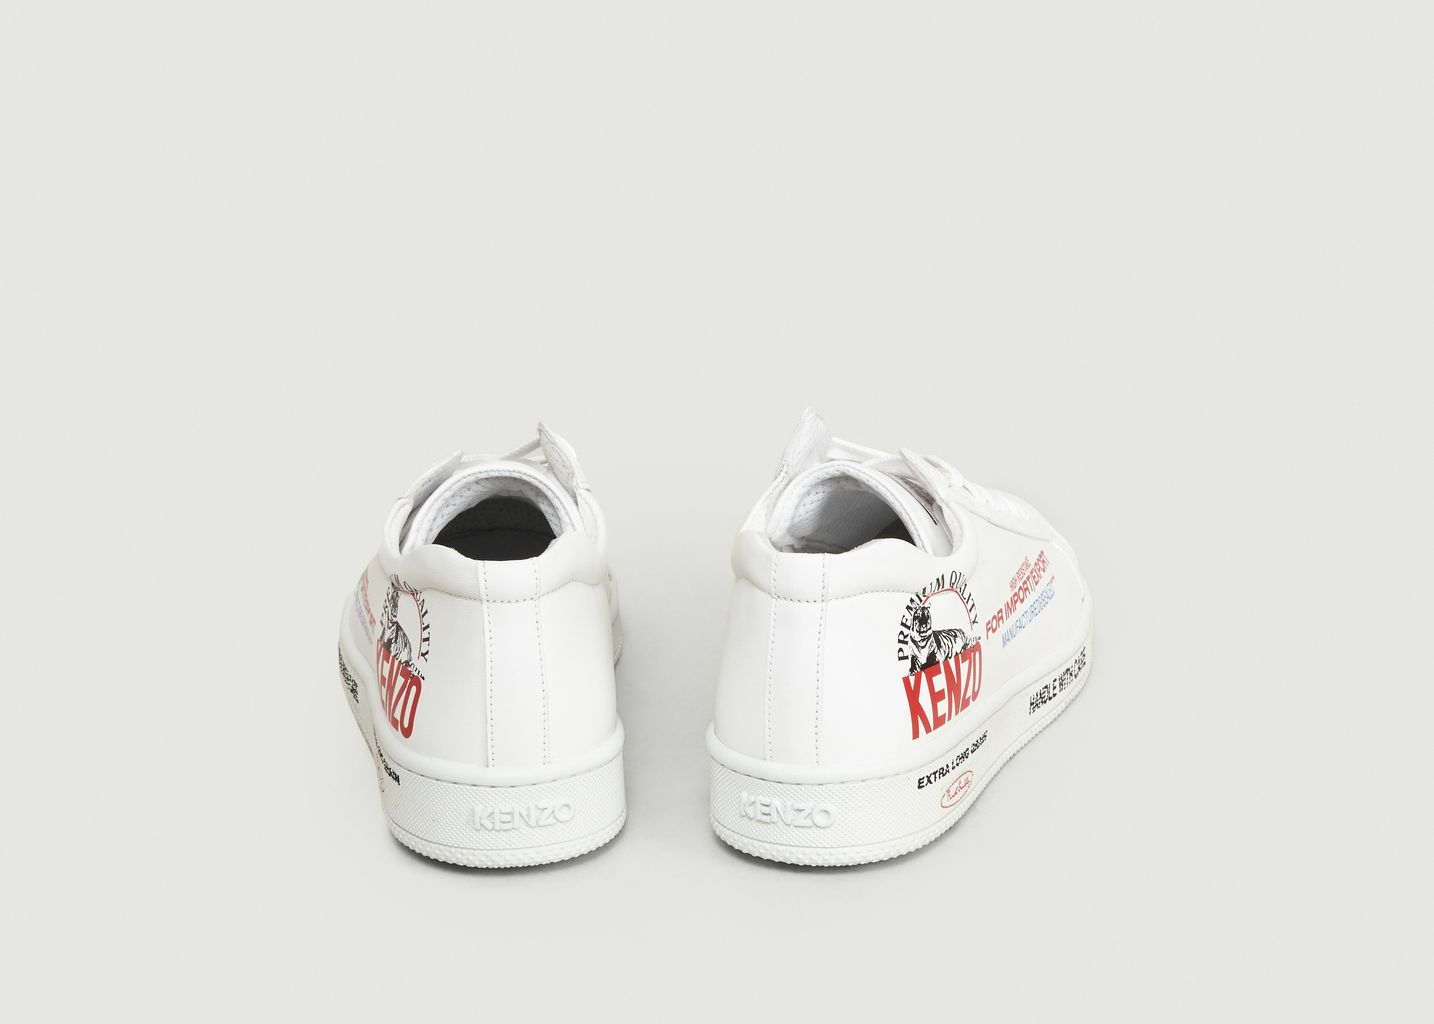 Sneakers Tennix Tiger Rice Bag - Kenzo